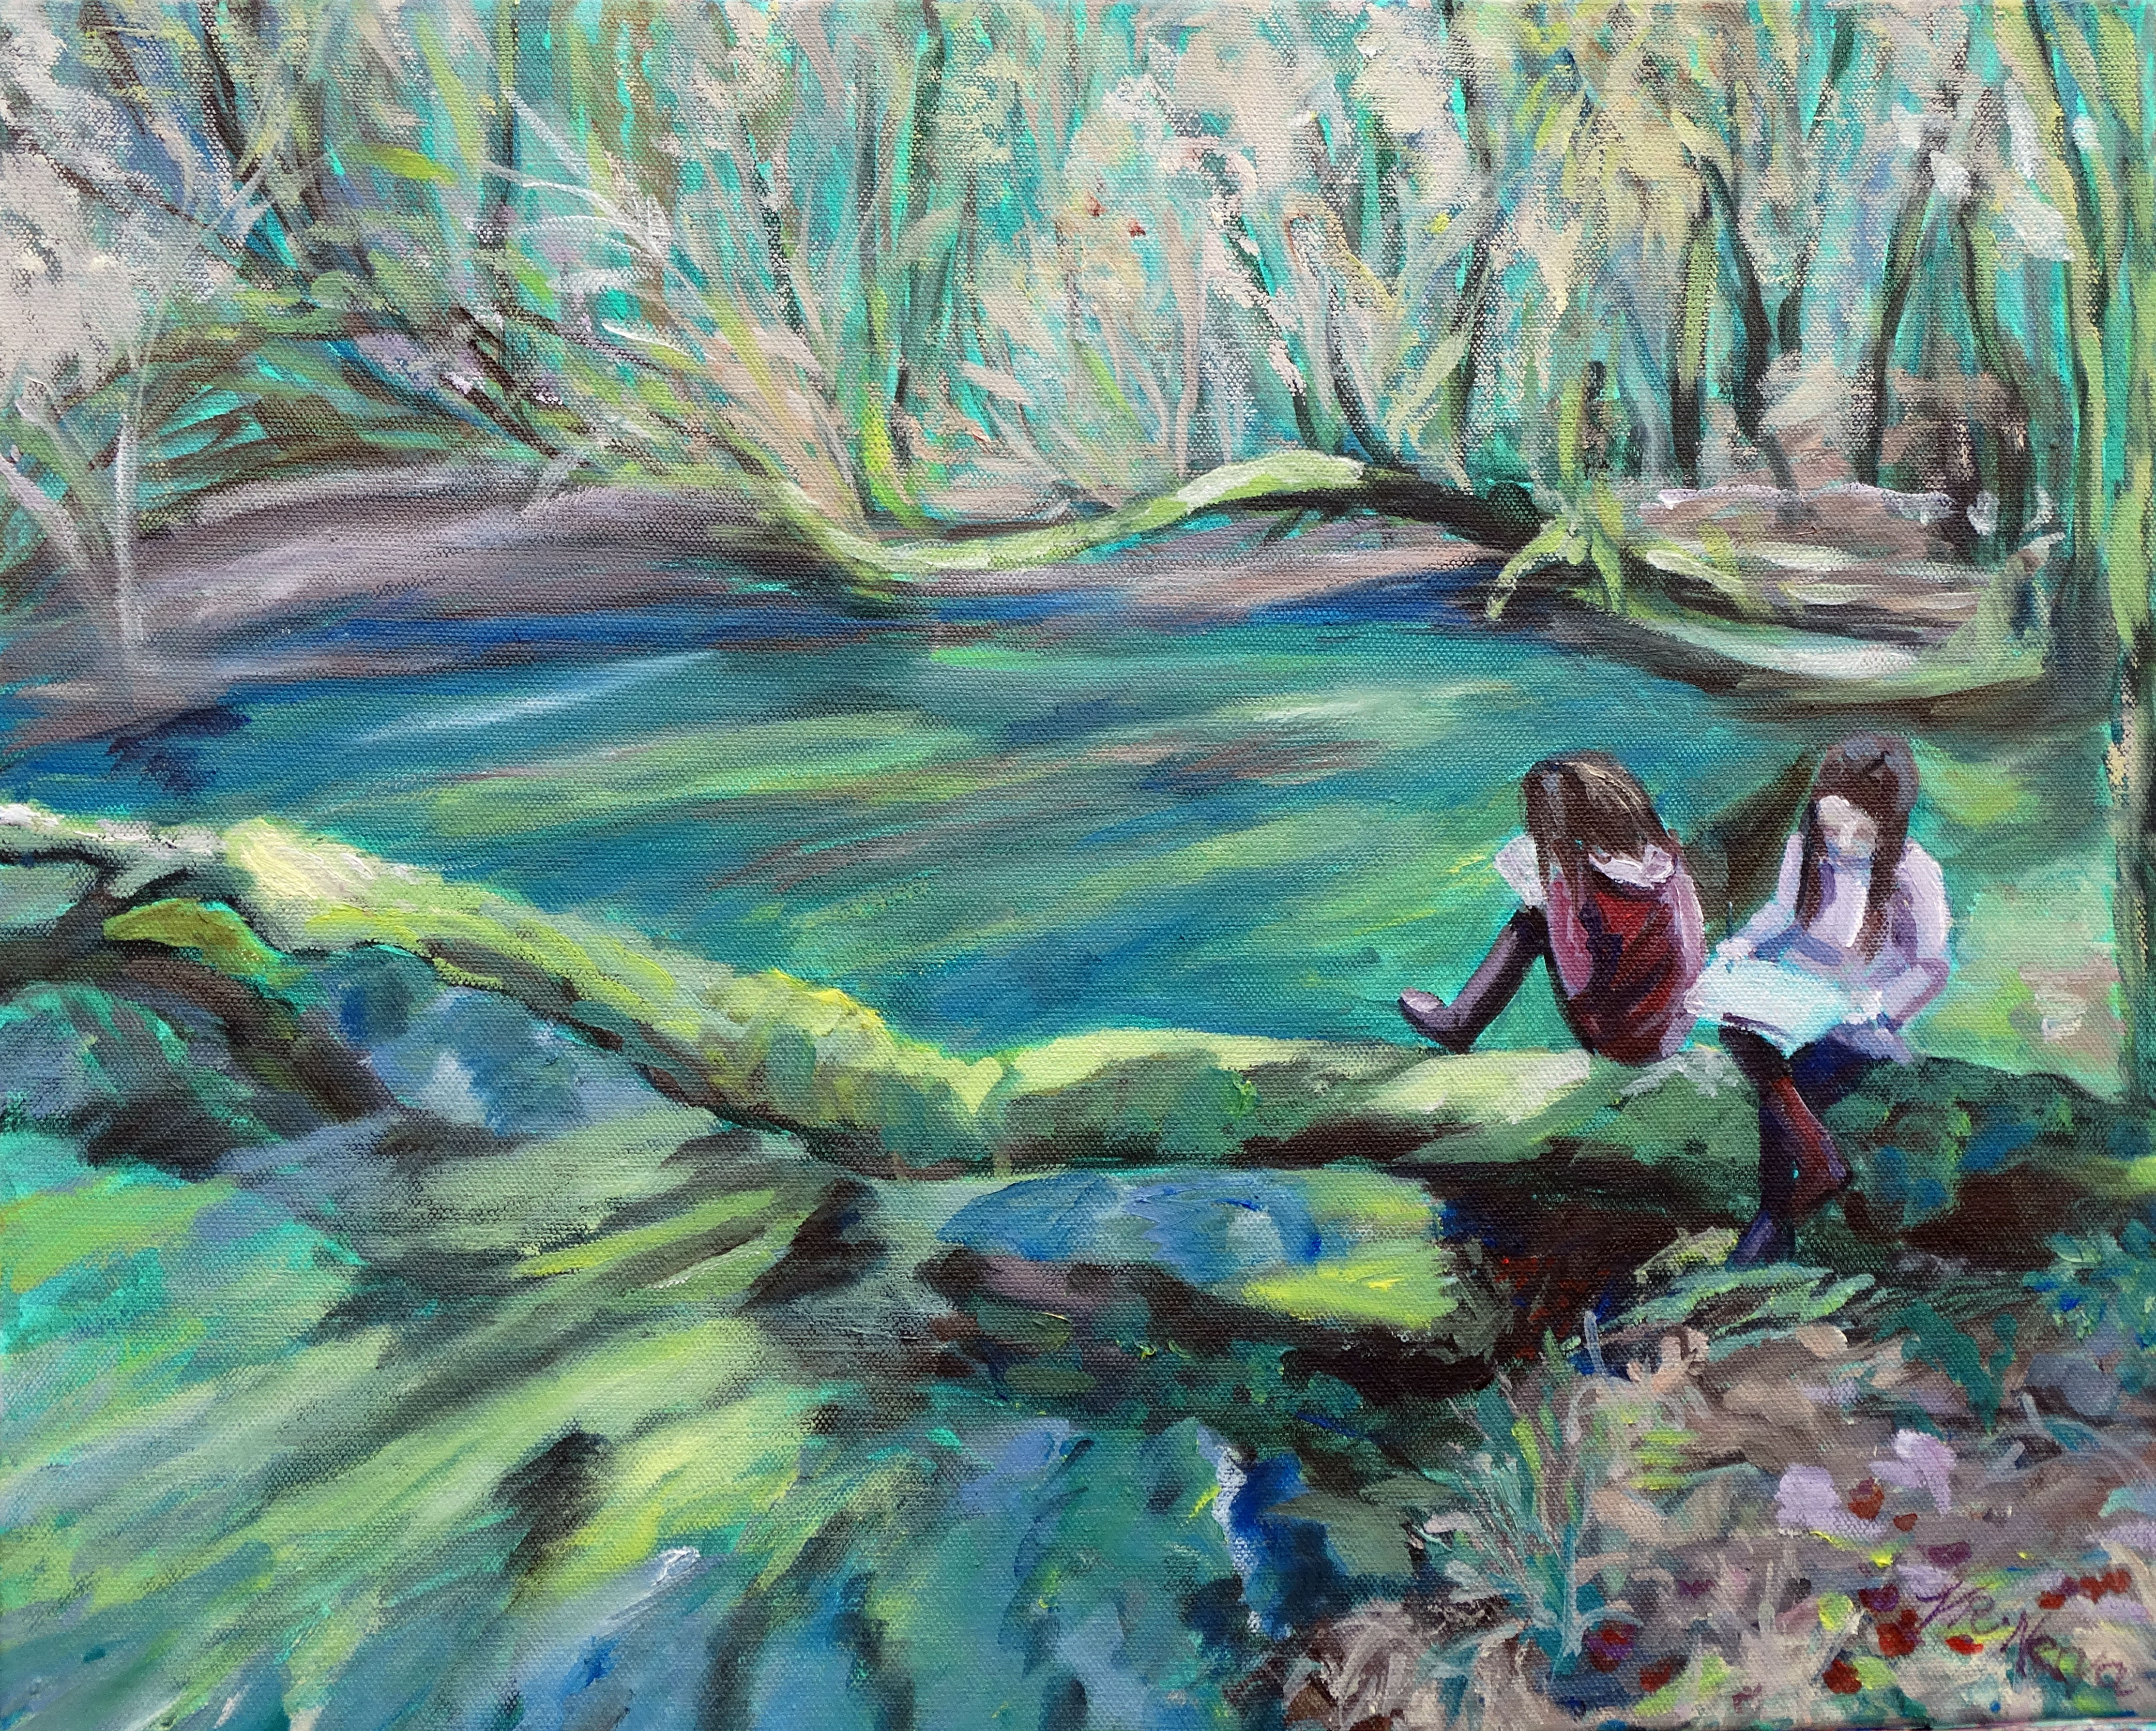 YOUNG ARTISTS AT ELF CUP POND by Valerie Nerva